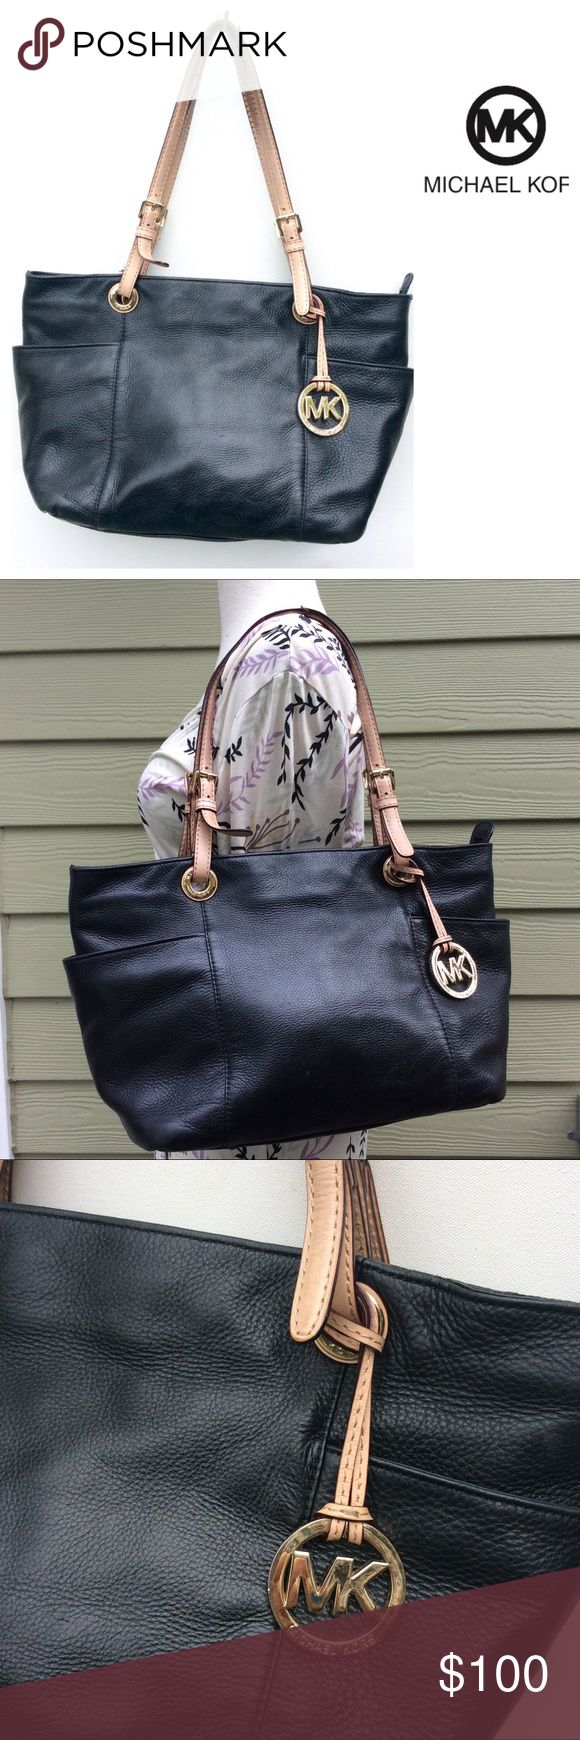 MICHAEL KORS large black BAG leather authentic Roomy leather bag by Michael Kors . Some wear to handles and inner lining. Still lots of life left! Measurements are in picture. Michael Kors Bags Shoulder Bags